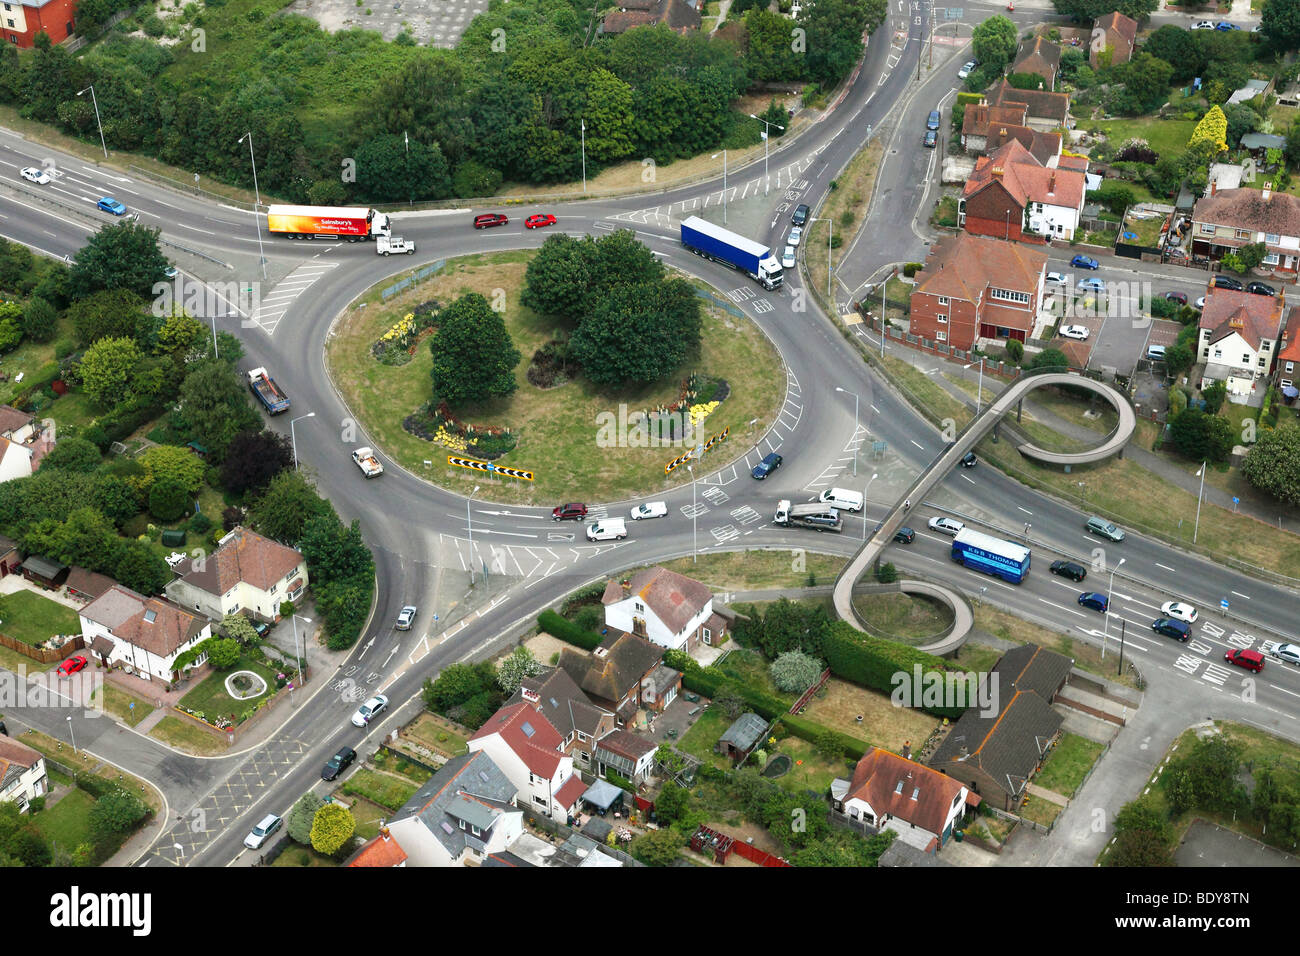 An aerial photograph of a typical roundabout junction on British roads - Stock Image